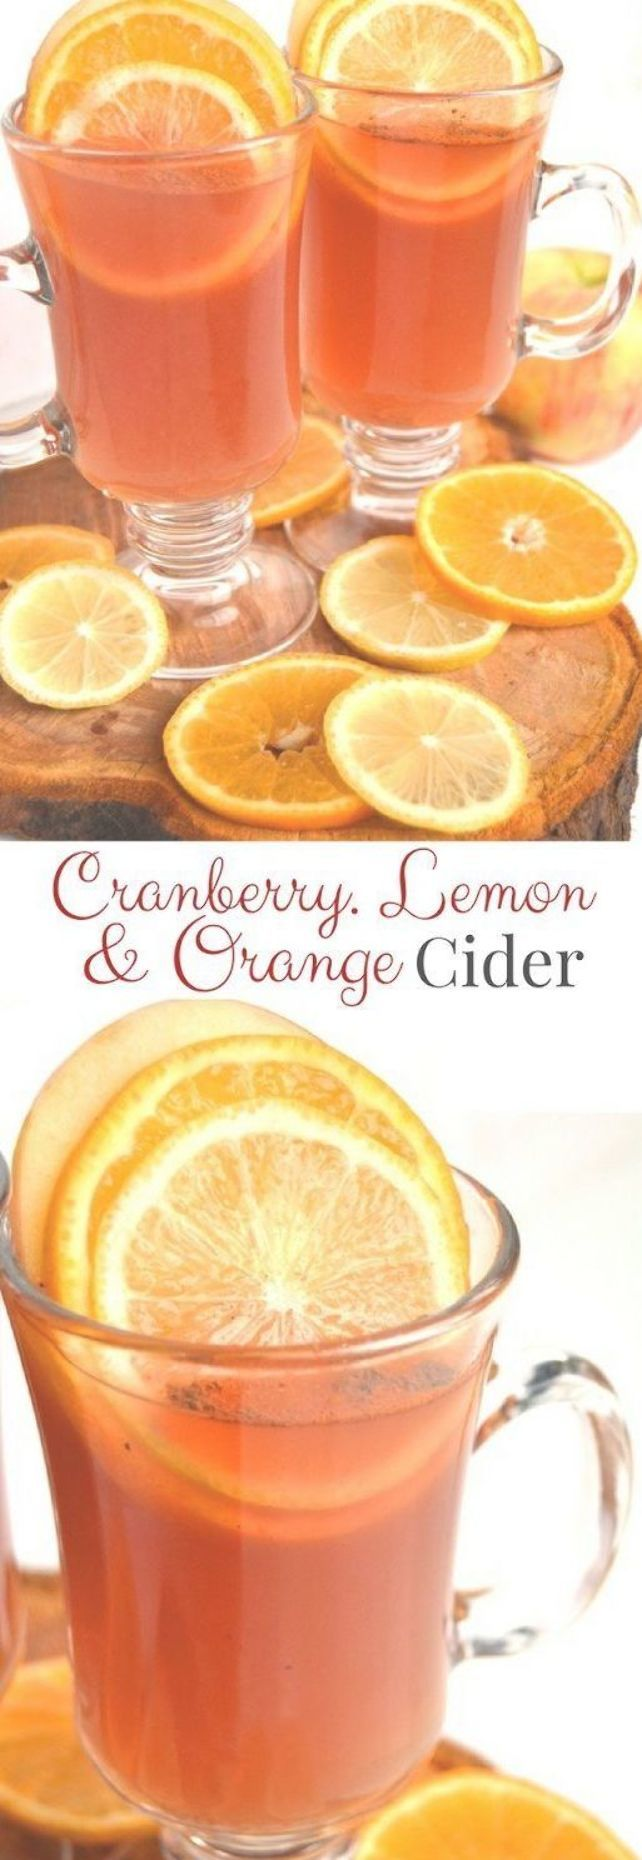 Cranberry, Lemon and Orange Cider is the perfect non-alcoholic beverage for the holidays that is best served hot but is delicious cold as well! A mix of cranberry, lemon and orange juice with cinnamon and fresh fruit. #thanksgivingdrinksalcohol